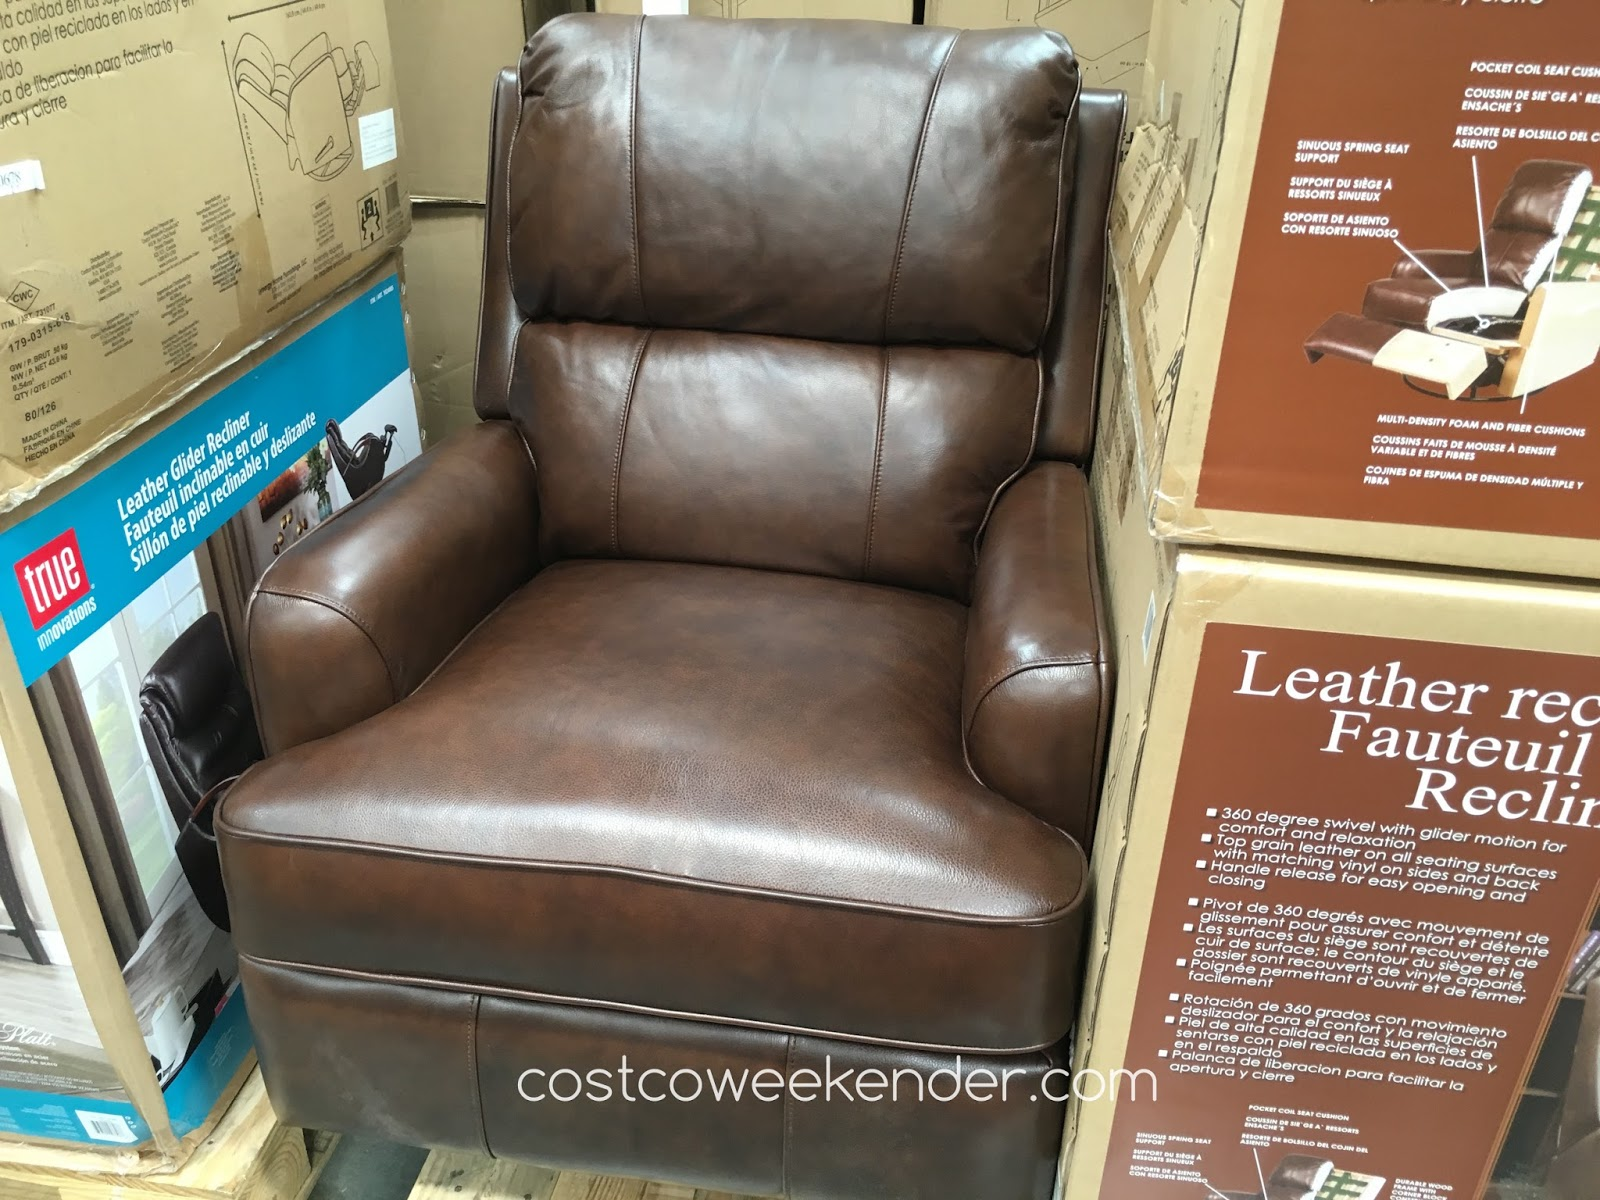 synergy recliner chair amazon desk chairs leather costco weekender the perfect for any room